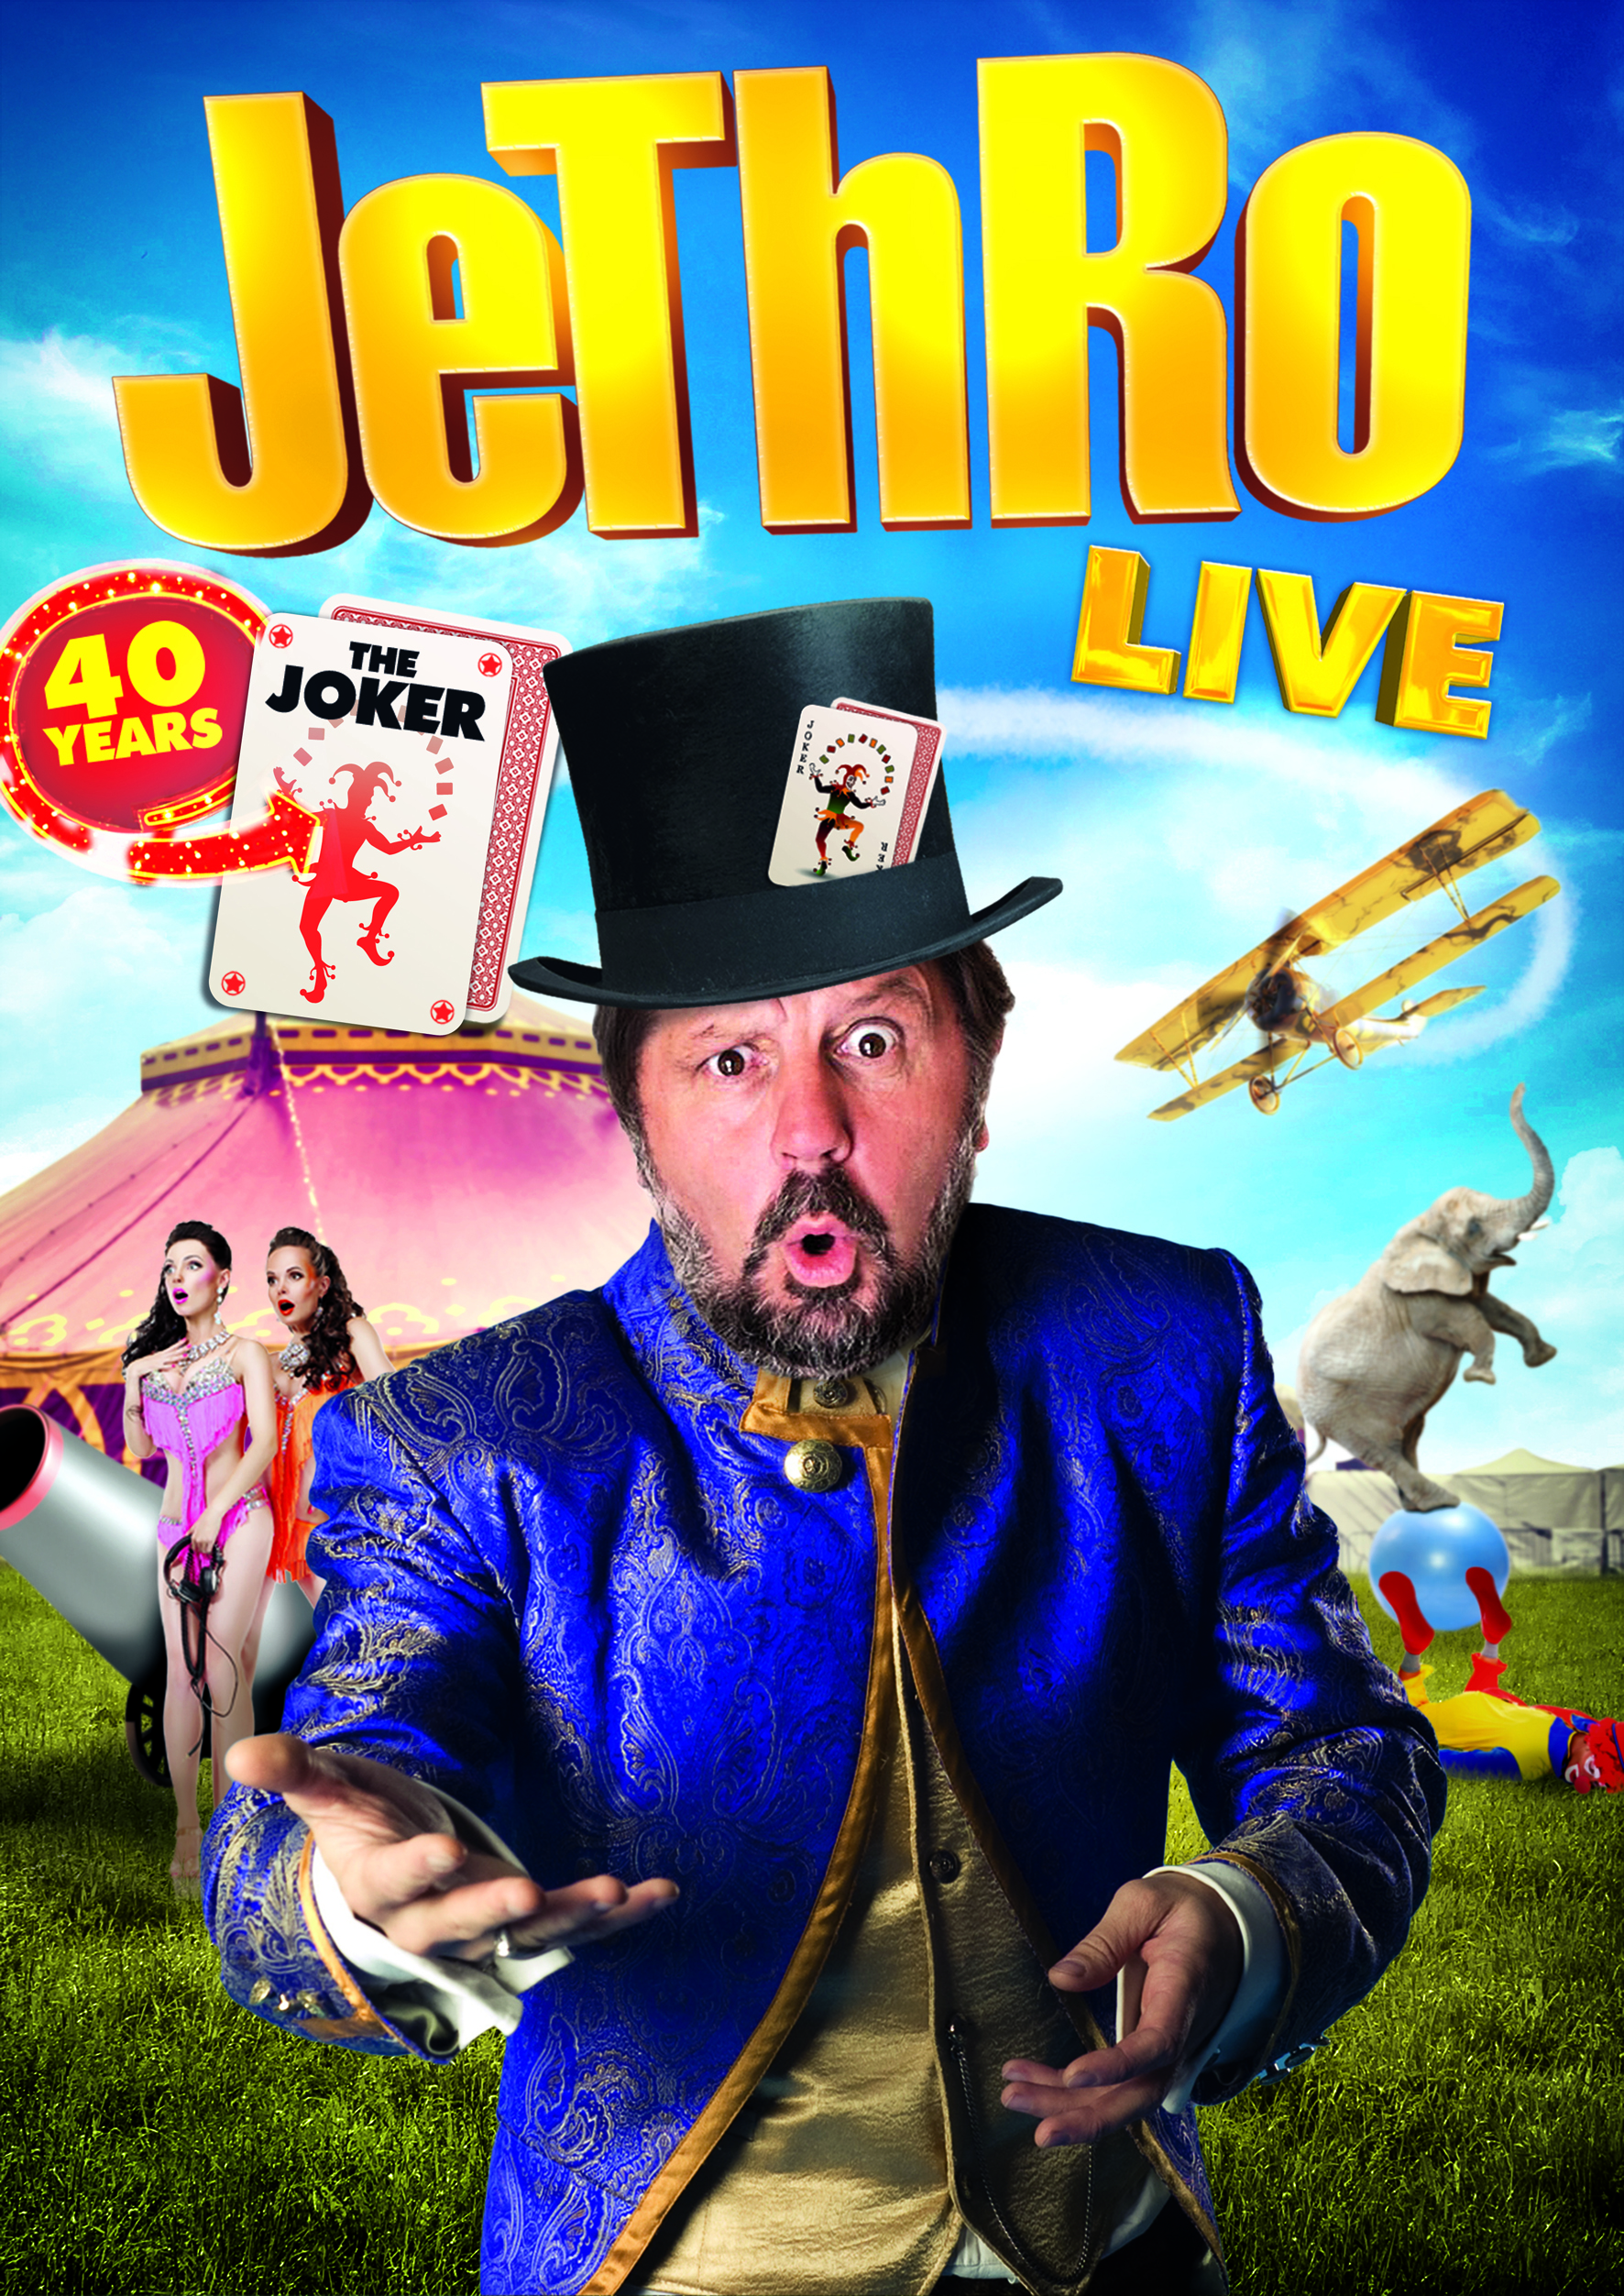 Jethro - 40 Years the Joker circus image